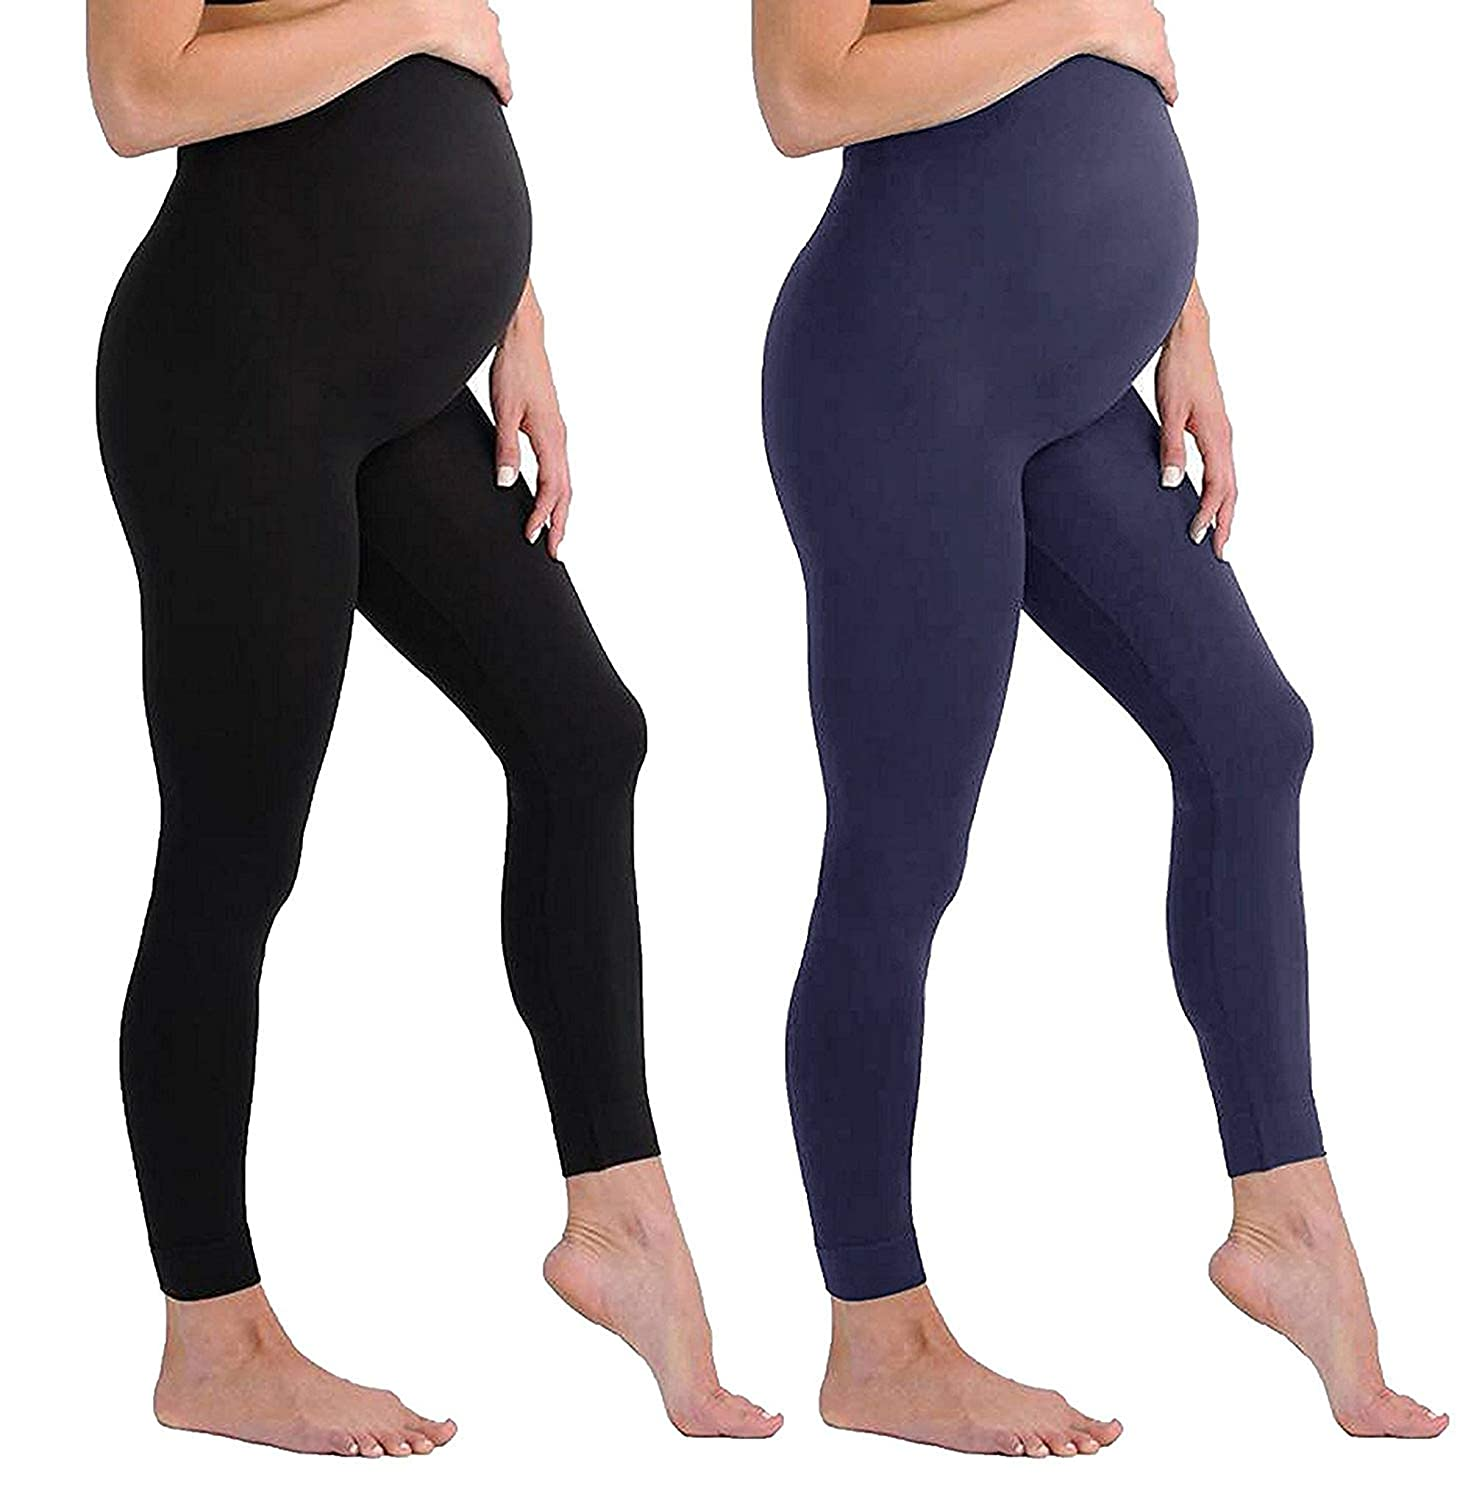 9c784a8bc6703 Touch Me Maternity Leggings Black Navy Grey Soft Solid Stretch Seamless  Tights One Size Fits All Active Wear Yoga Gym Clothes (Maternity - One Size  Fits All ...